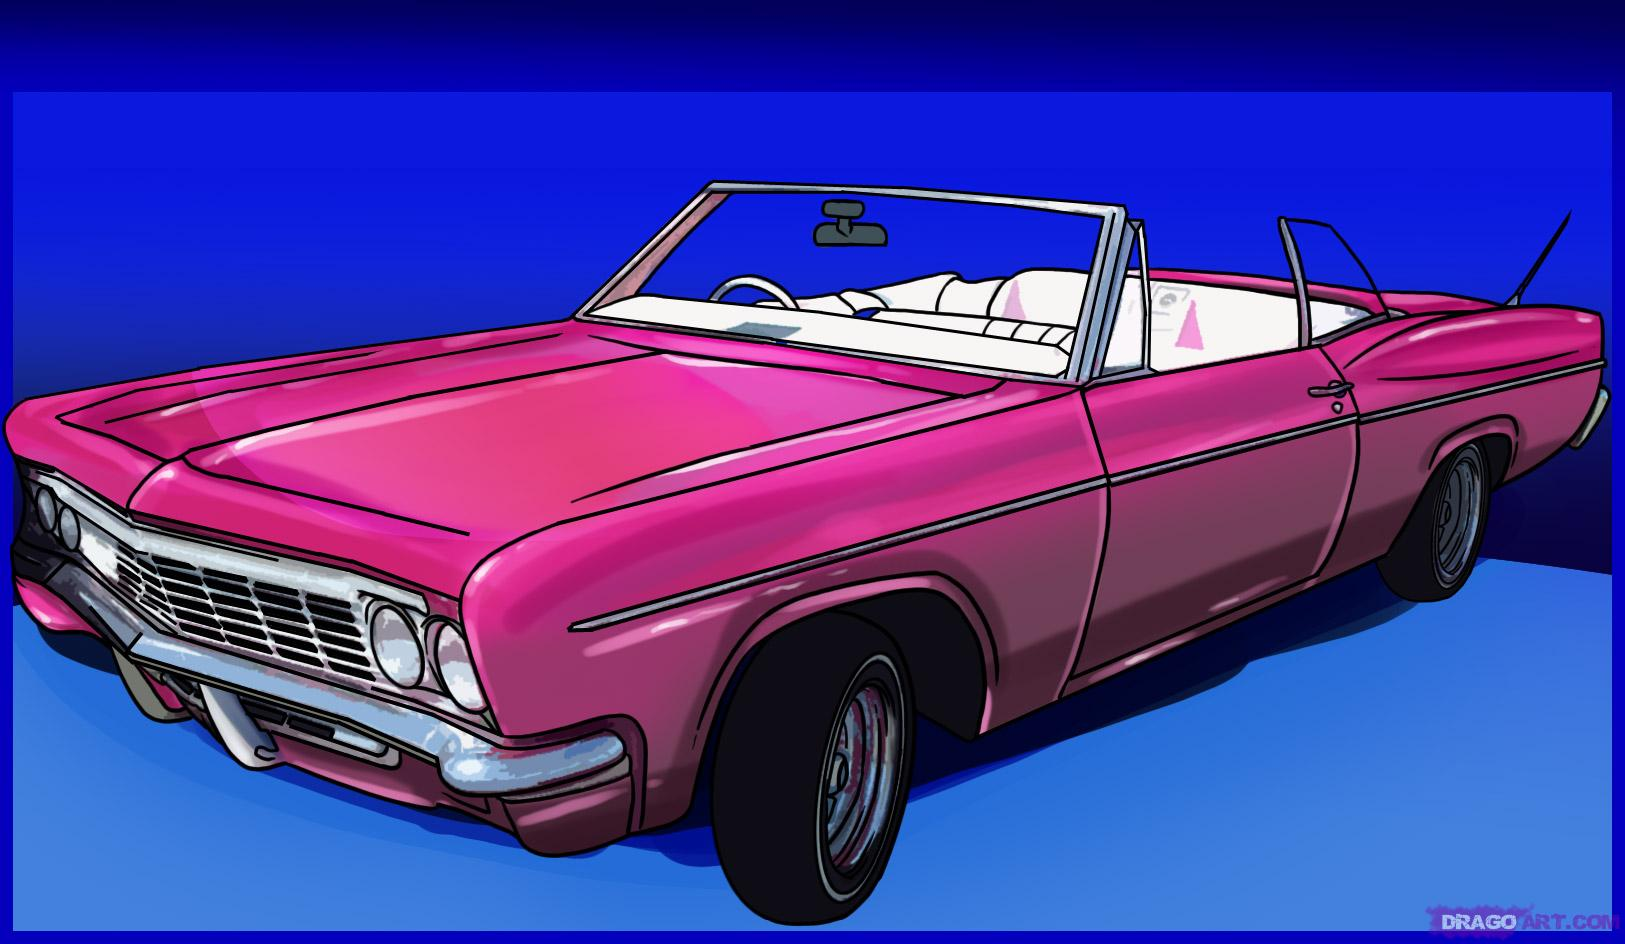 Drawn vehicle lowrider To Draw Online Lowrider Step